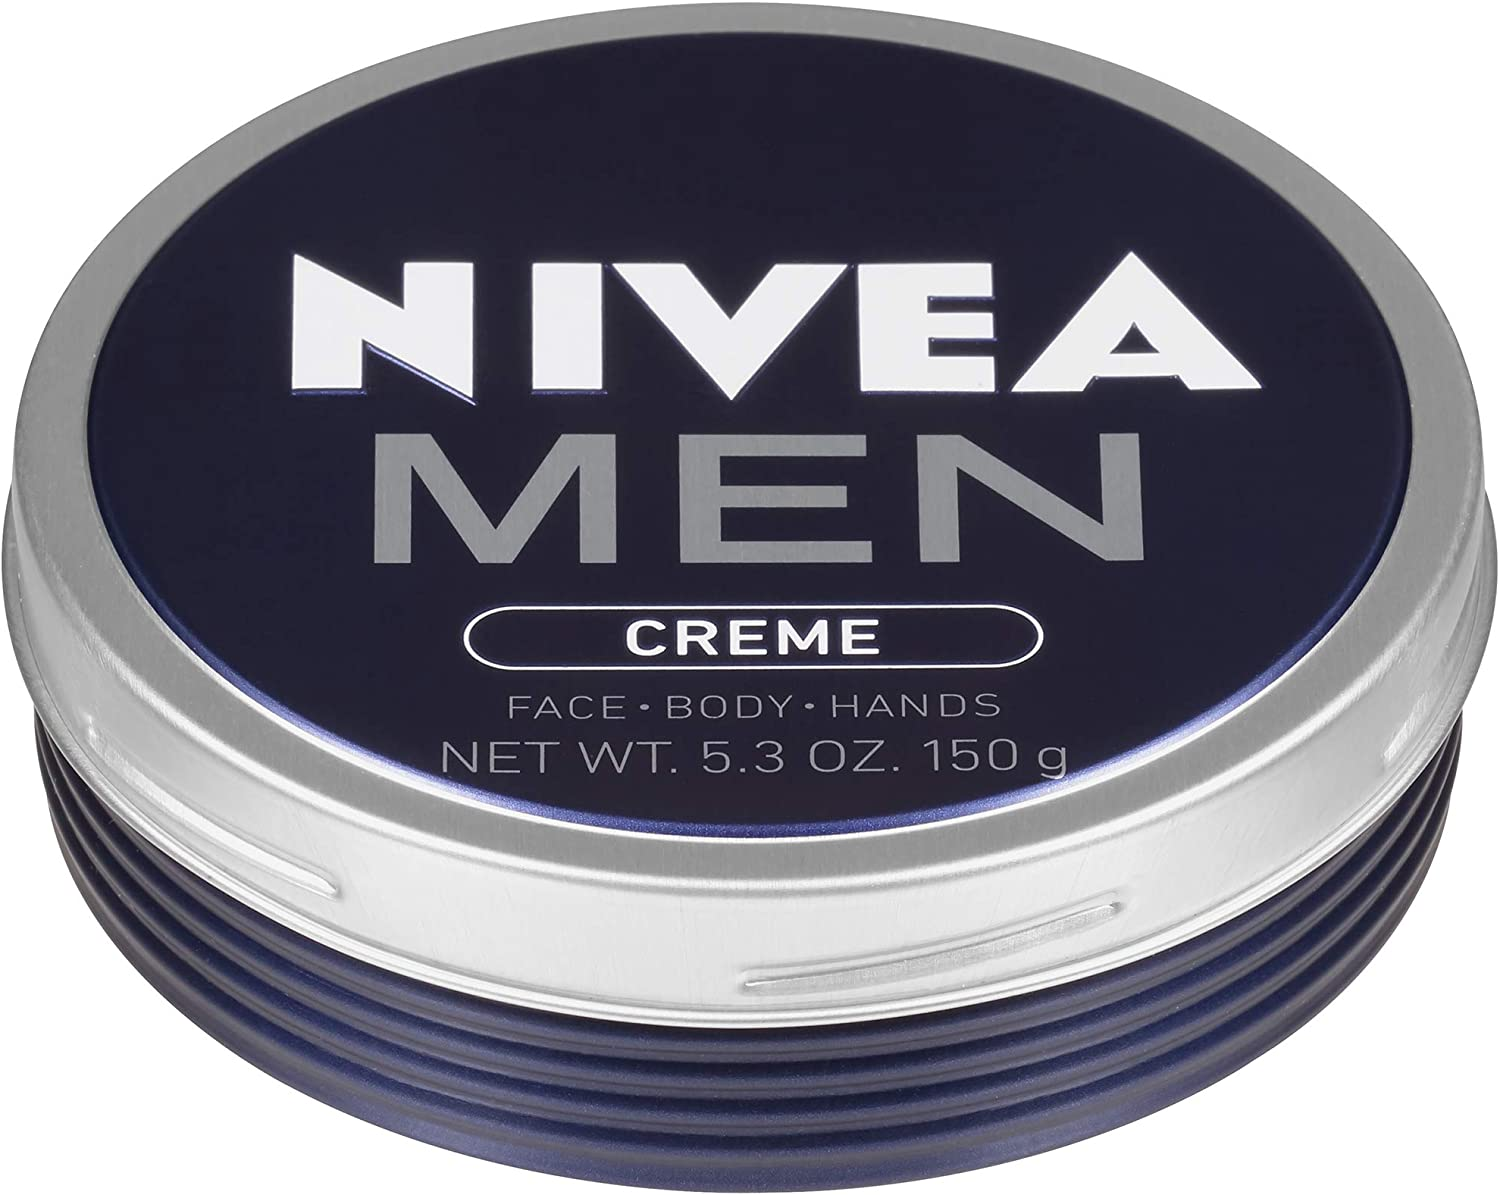 NIVEA Men Creme - Multipurpose Cream for Men - Face, hand and Body Lotion - 5.3 oz. Tin